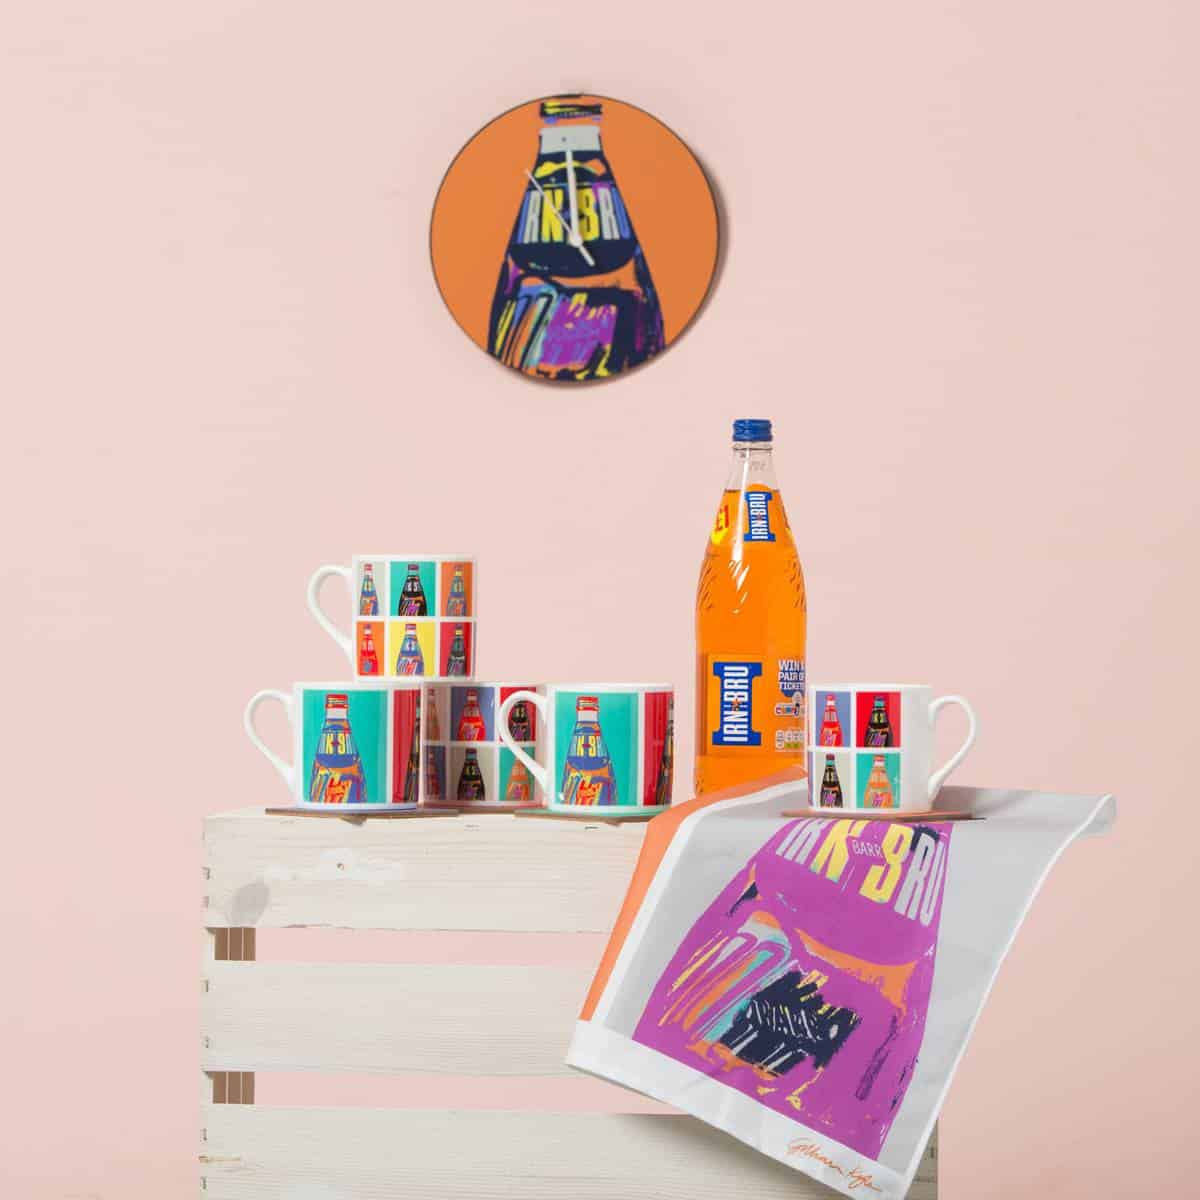 Irn Bru merchandise mugs, coasters, tea towel and clock